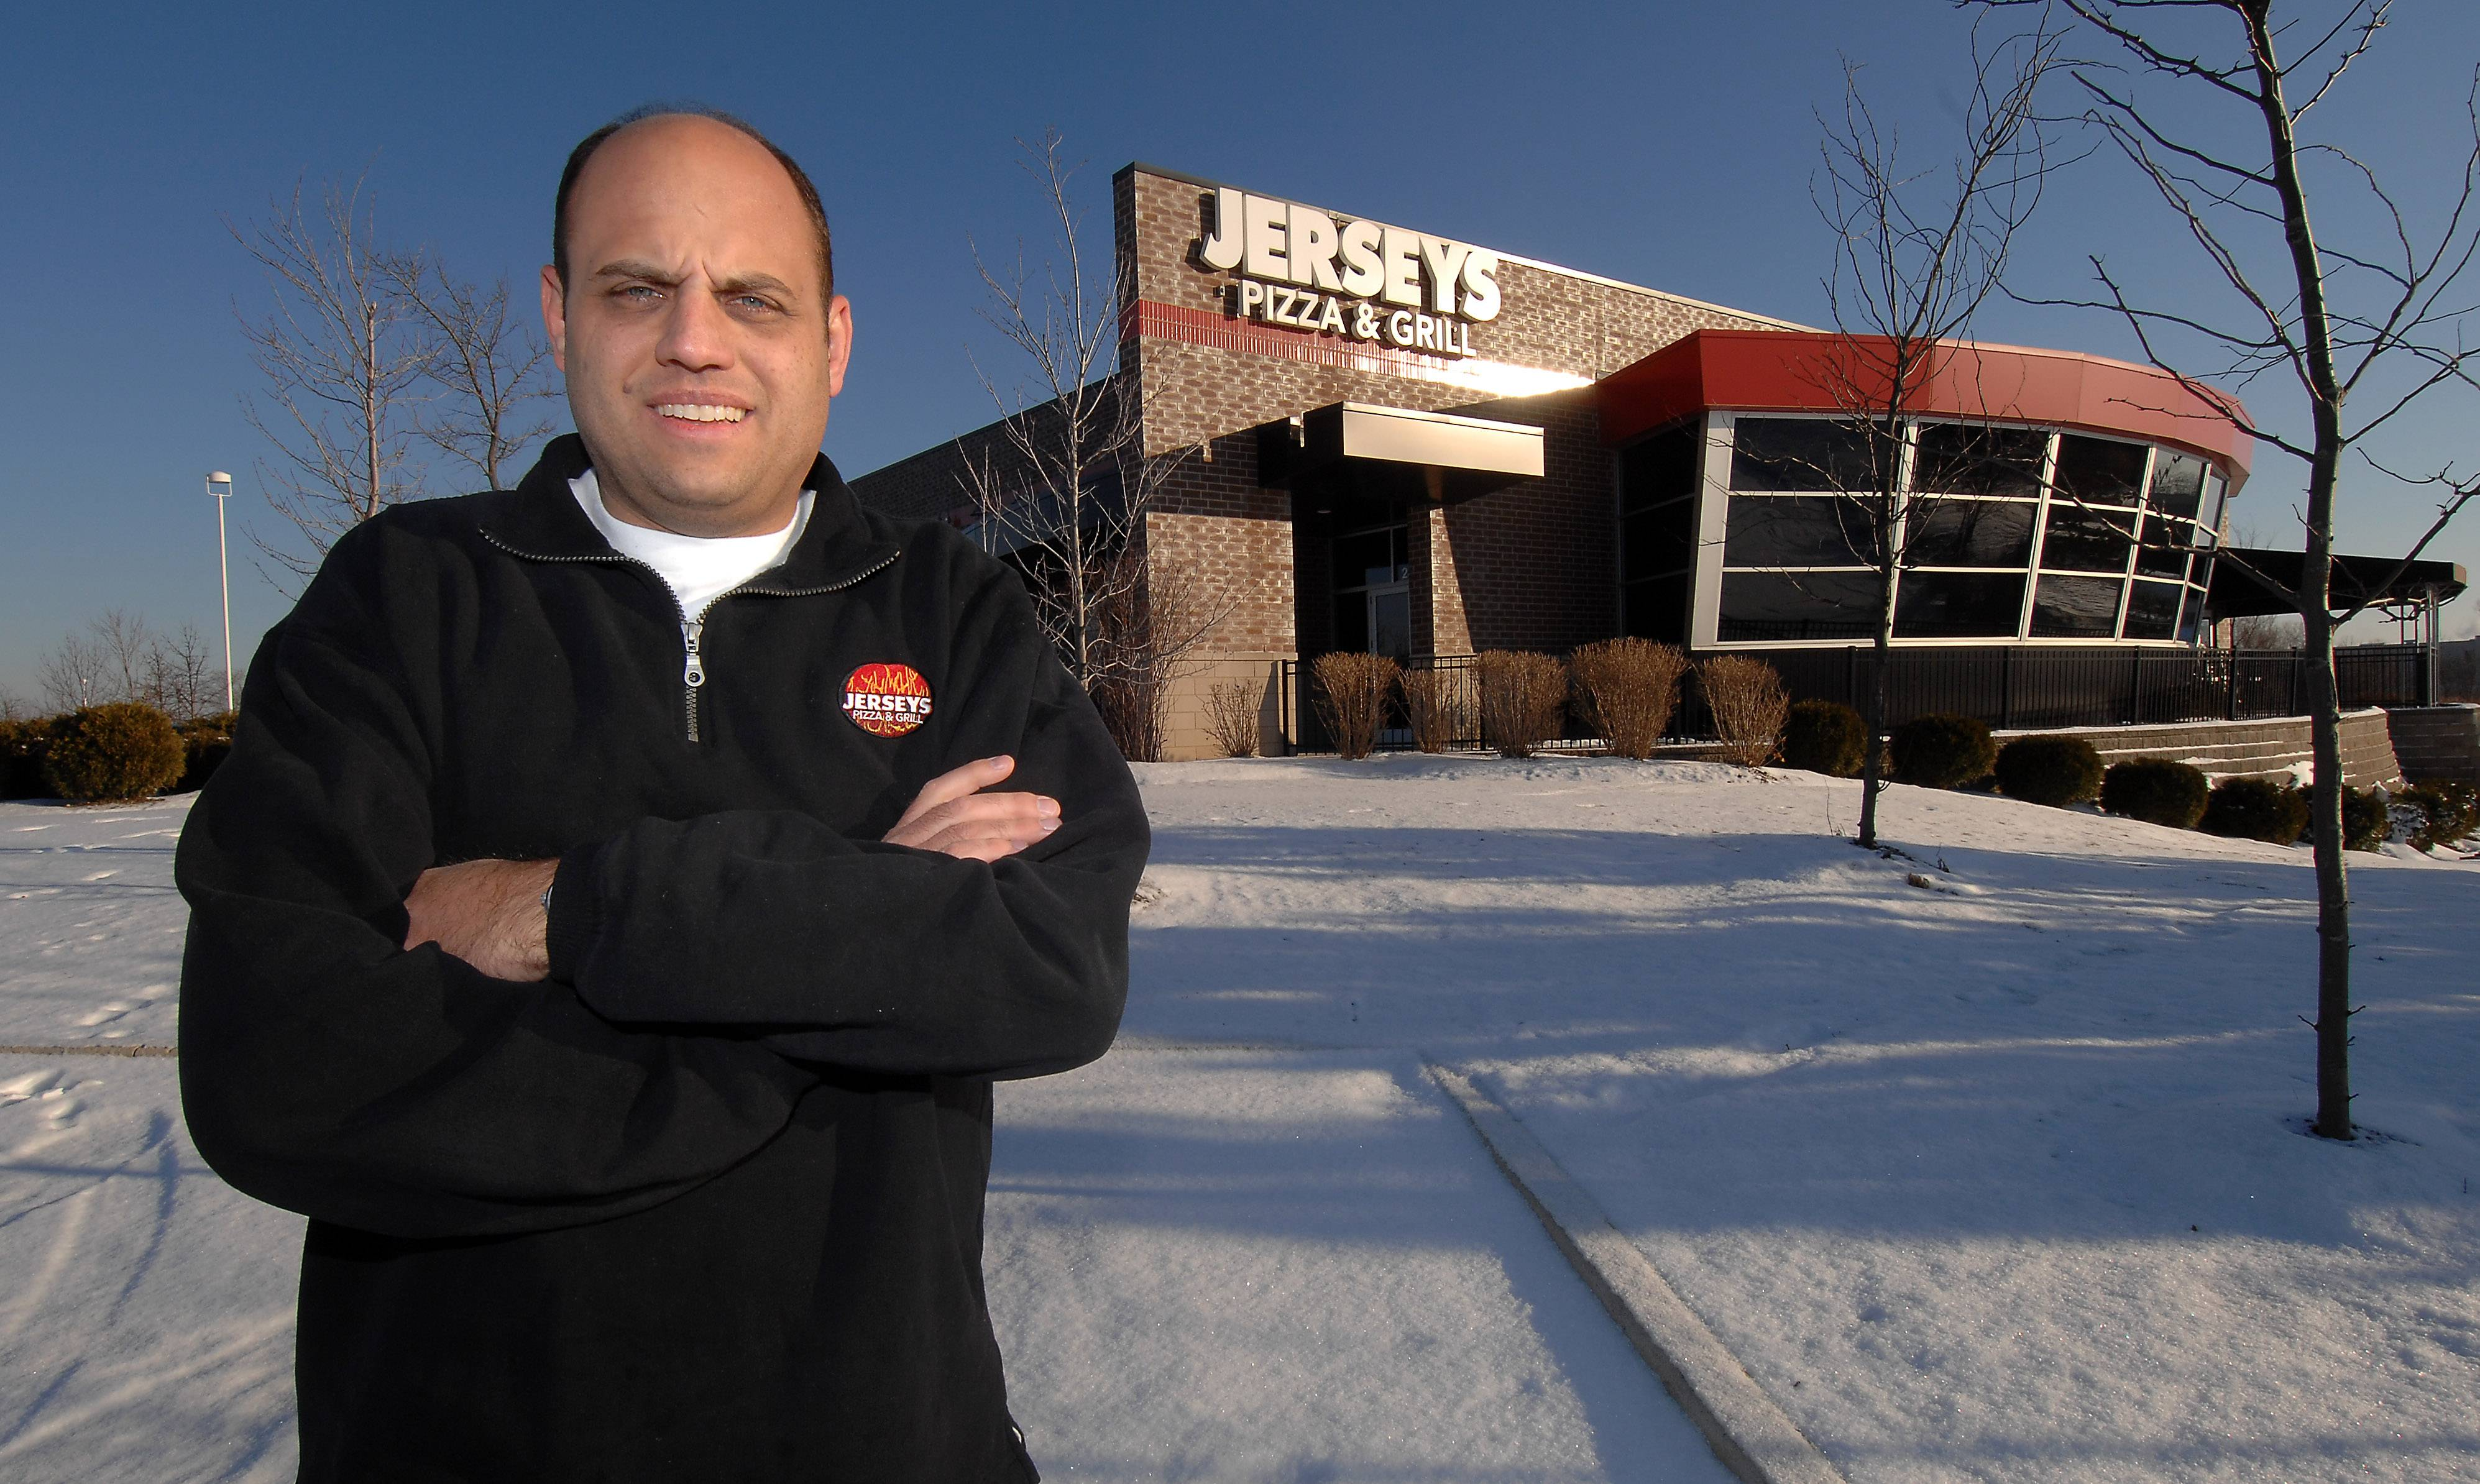 Mark Welsh Daily Herald File photo Gregg Majewski, owner of Jerseys Pizza and Grill restaurant in Hoffman Estates stands in front of his restaurant in this file photo.